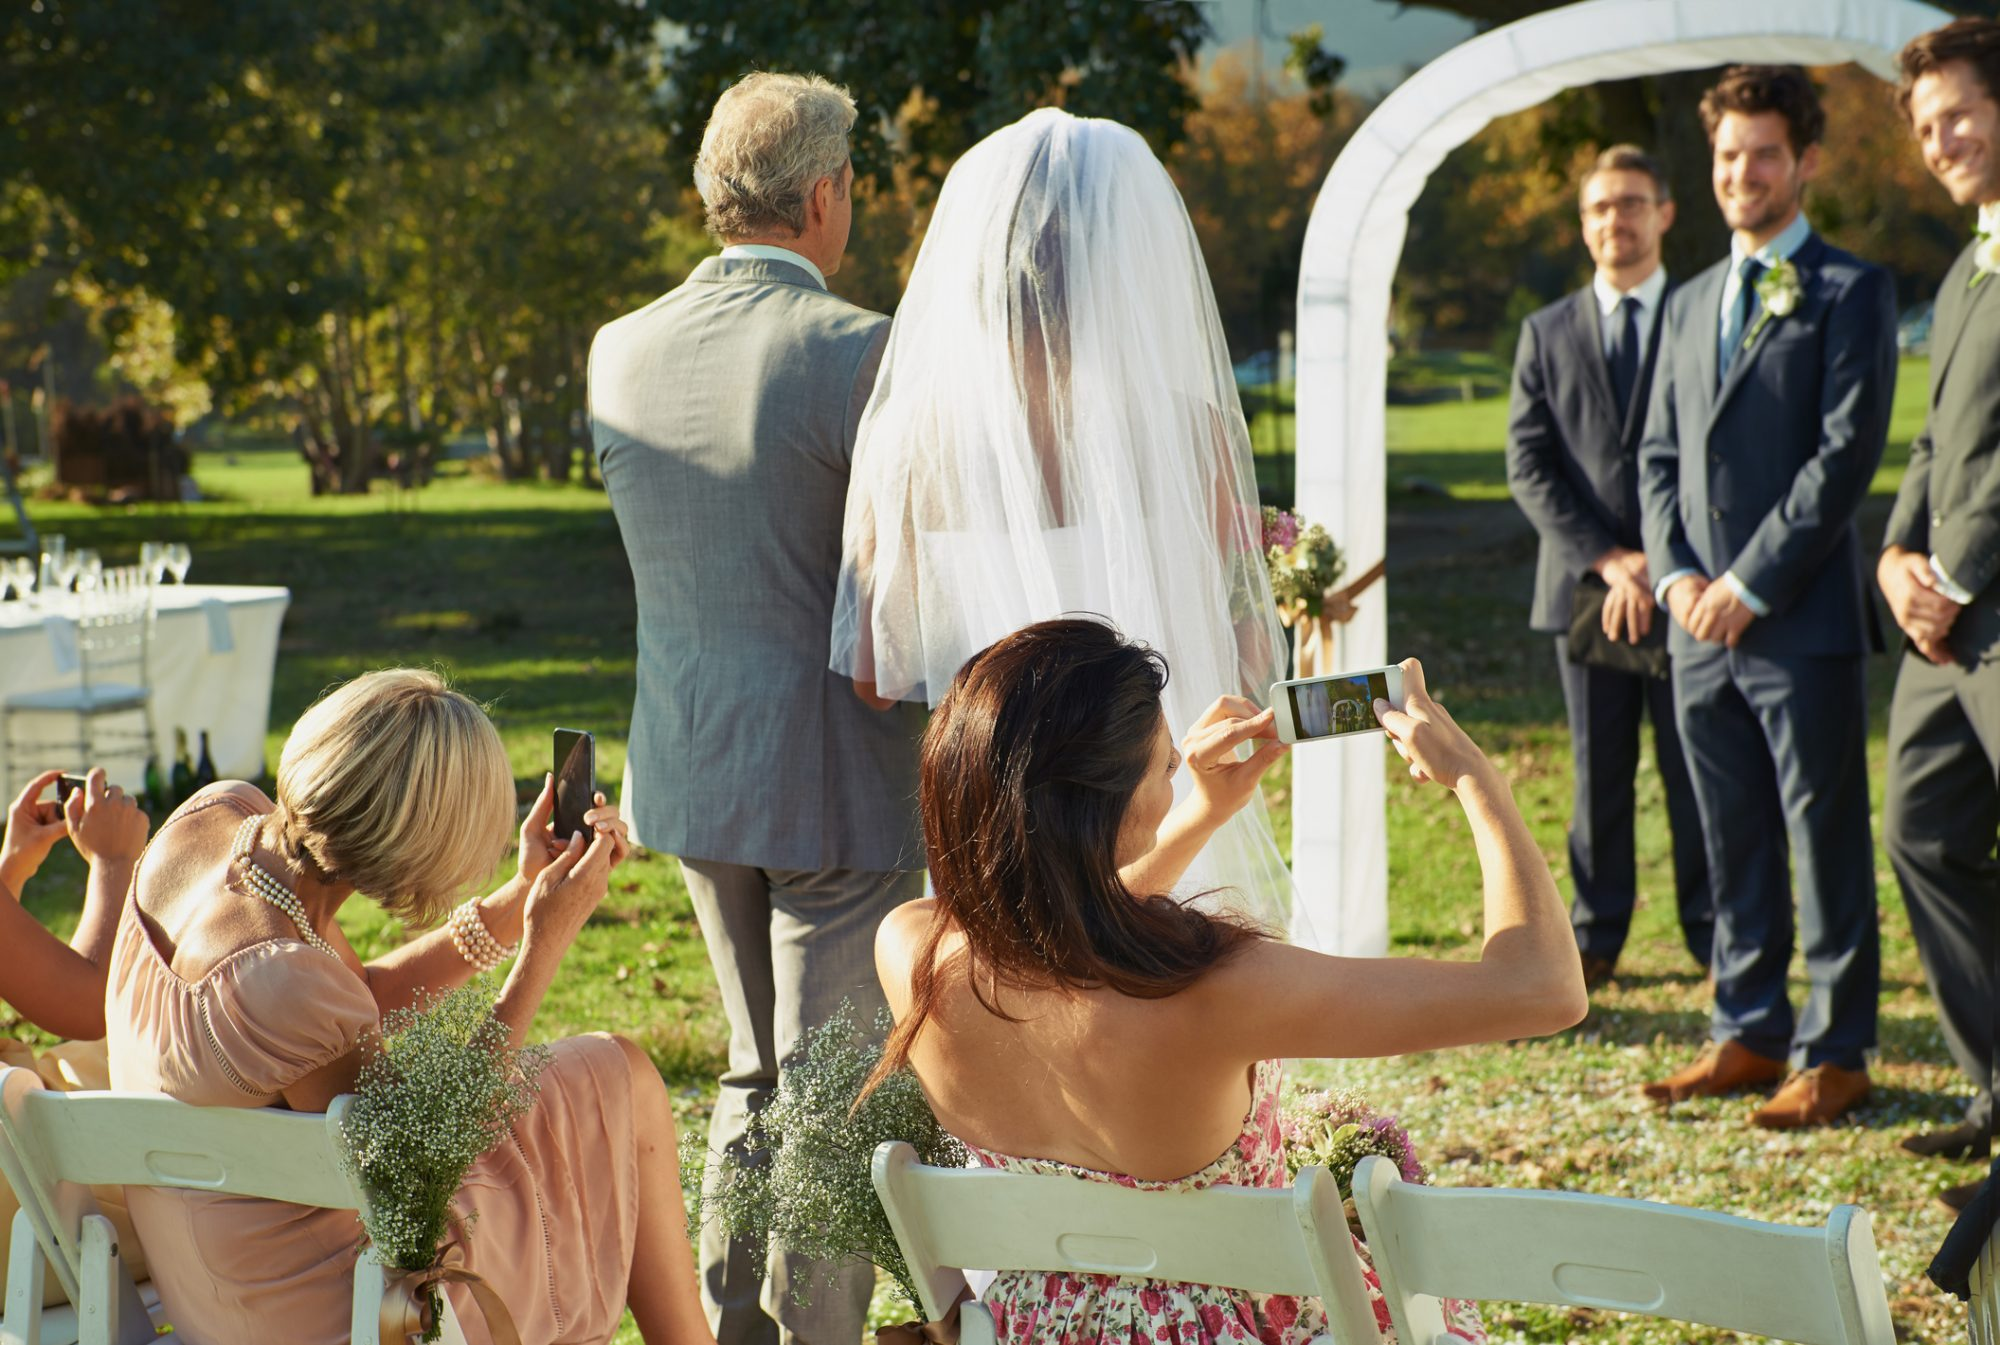 Wedding Guests Taking Pictures During Ceremony